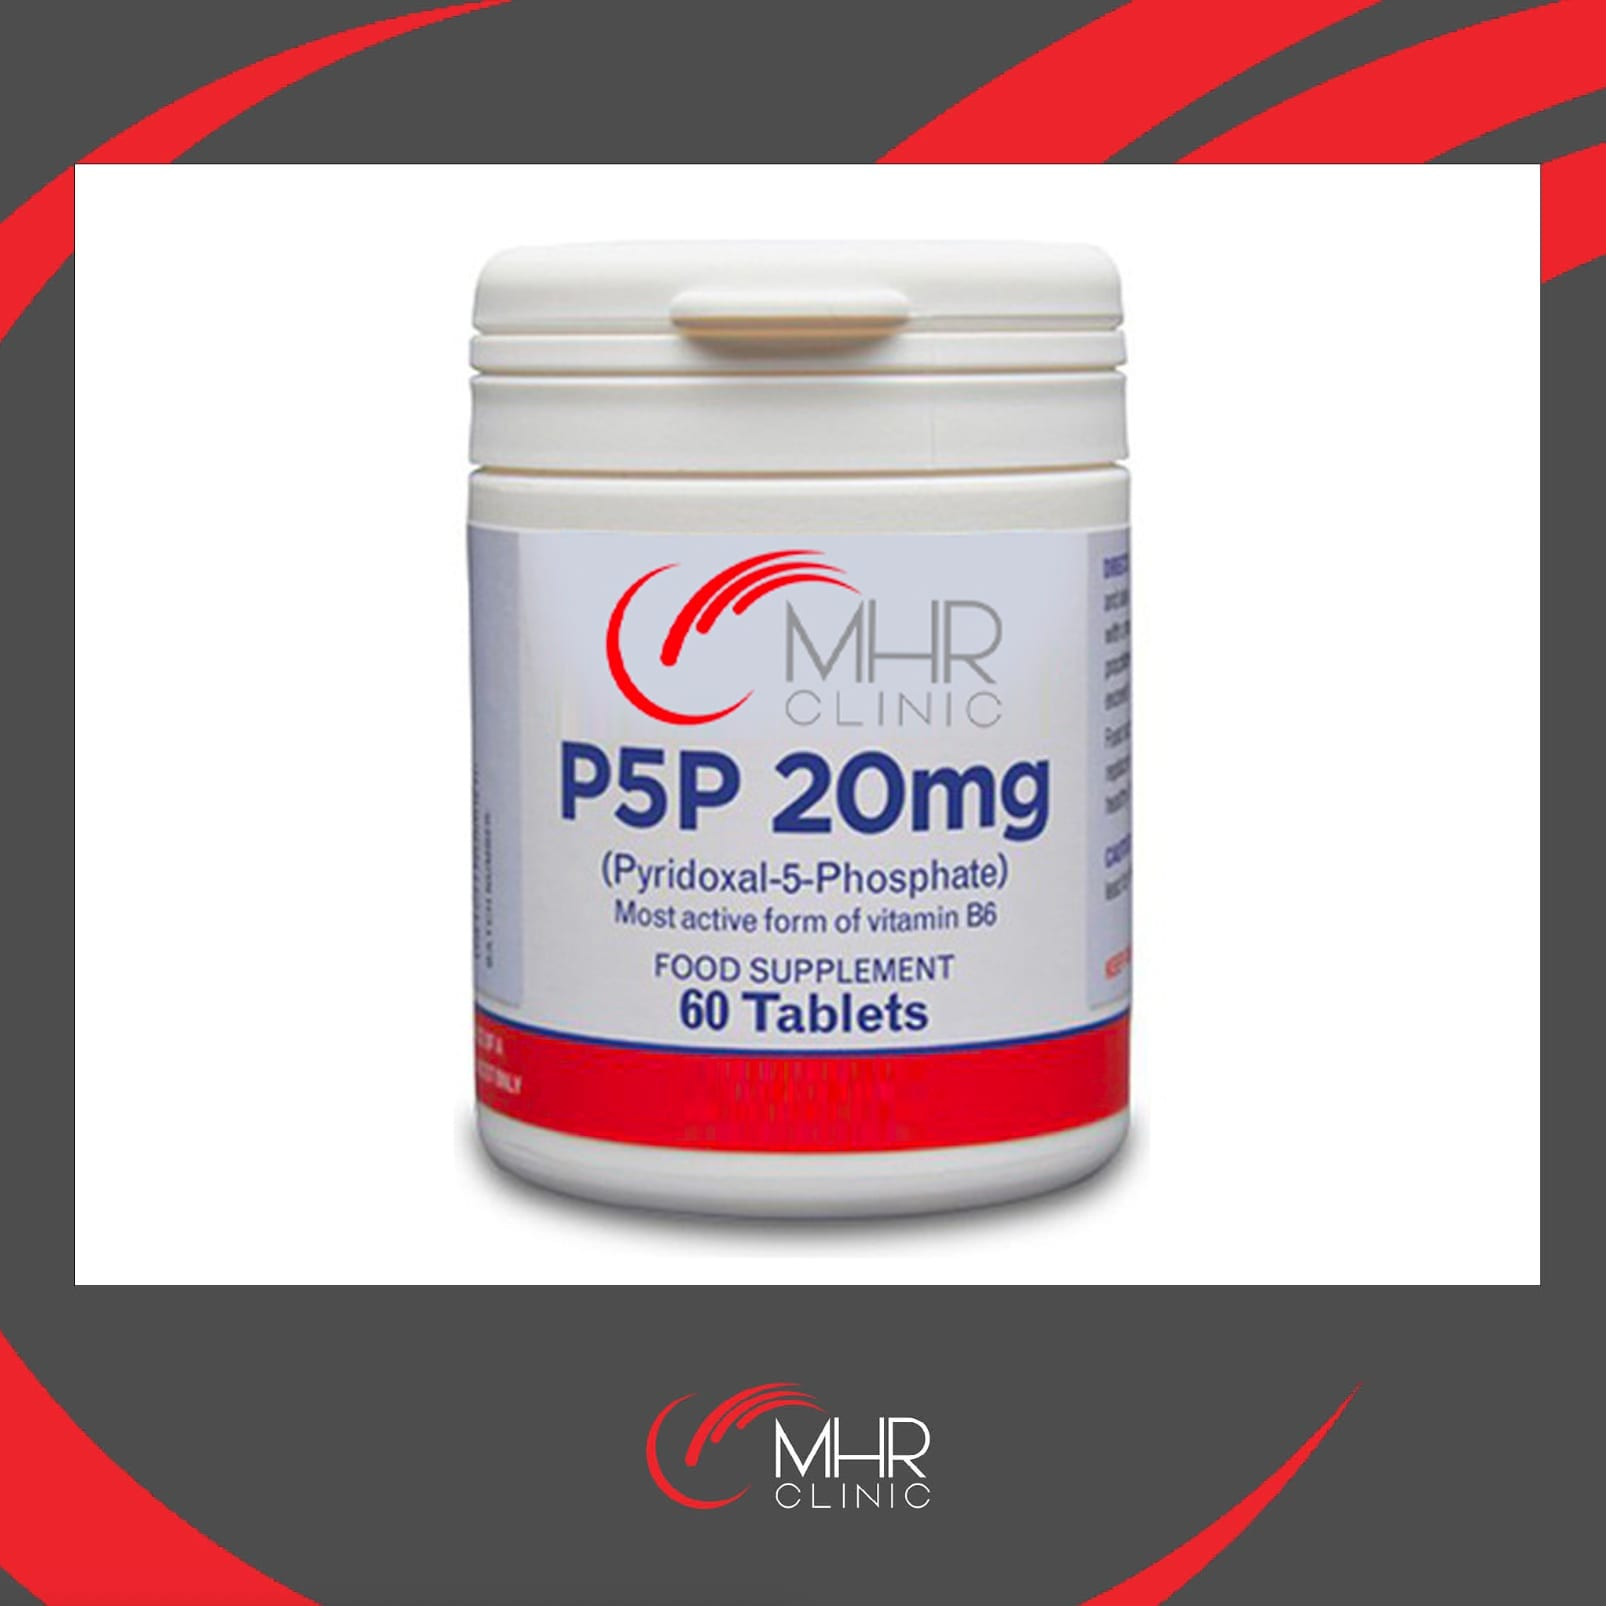 P5P Supplement for sale to help treat hair loss